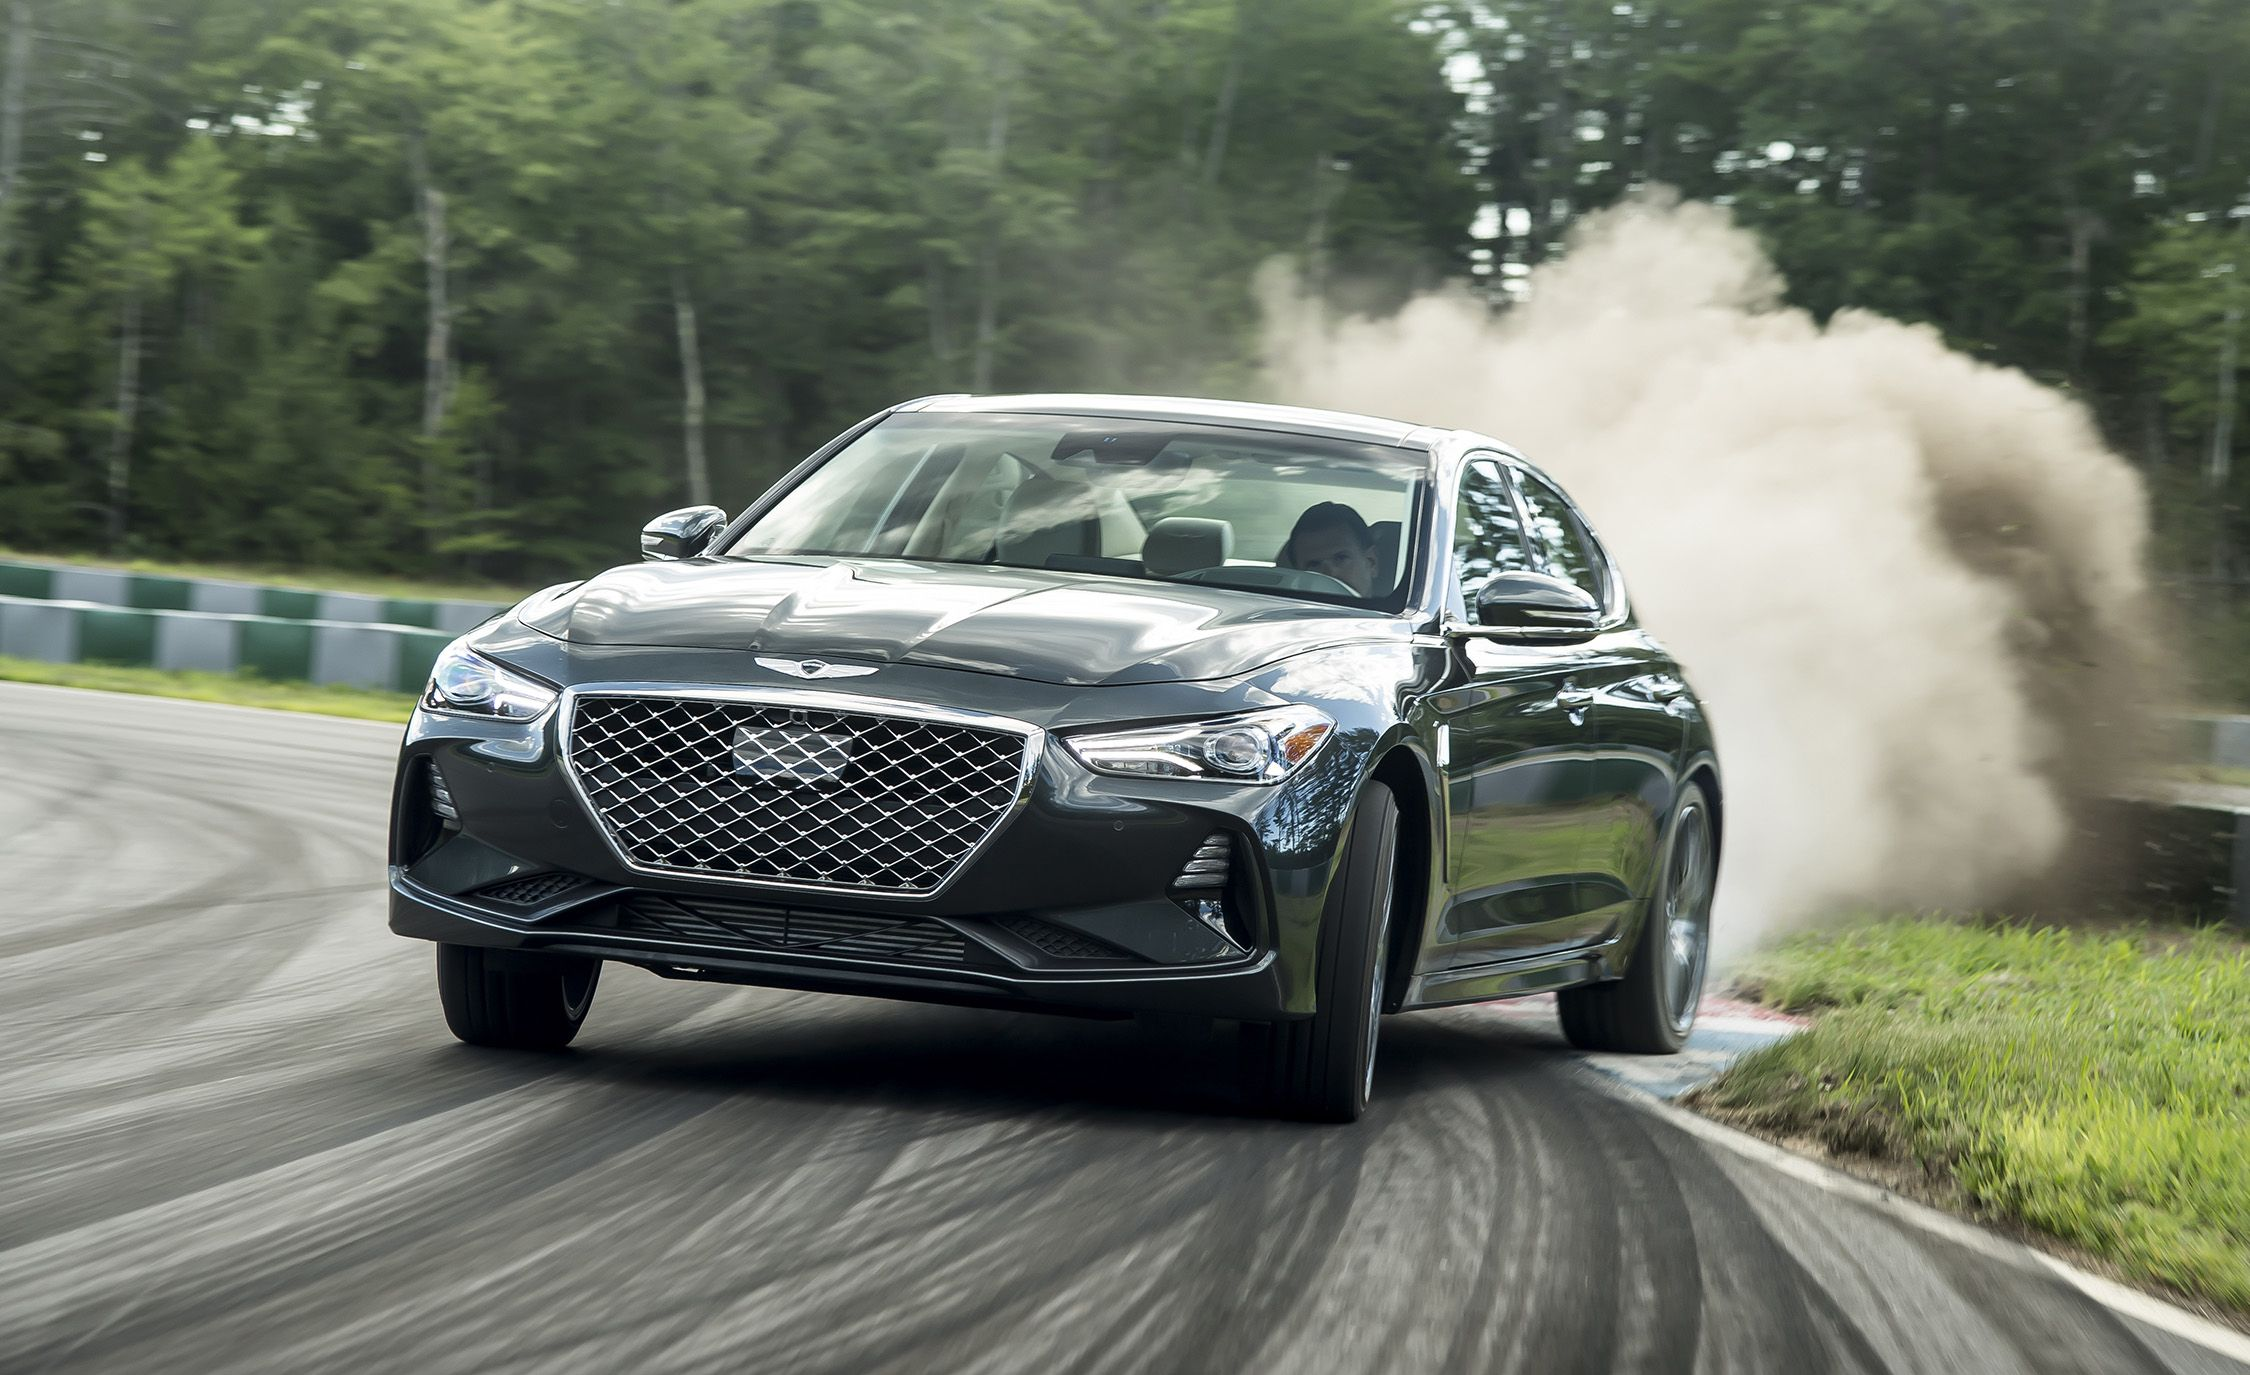 The 2019 Genesis G70 Is Priced from $35,895